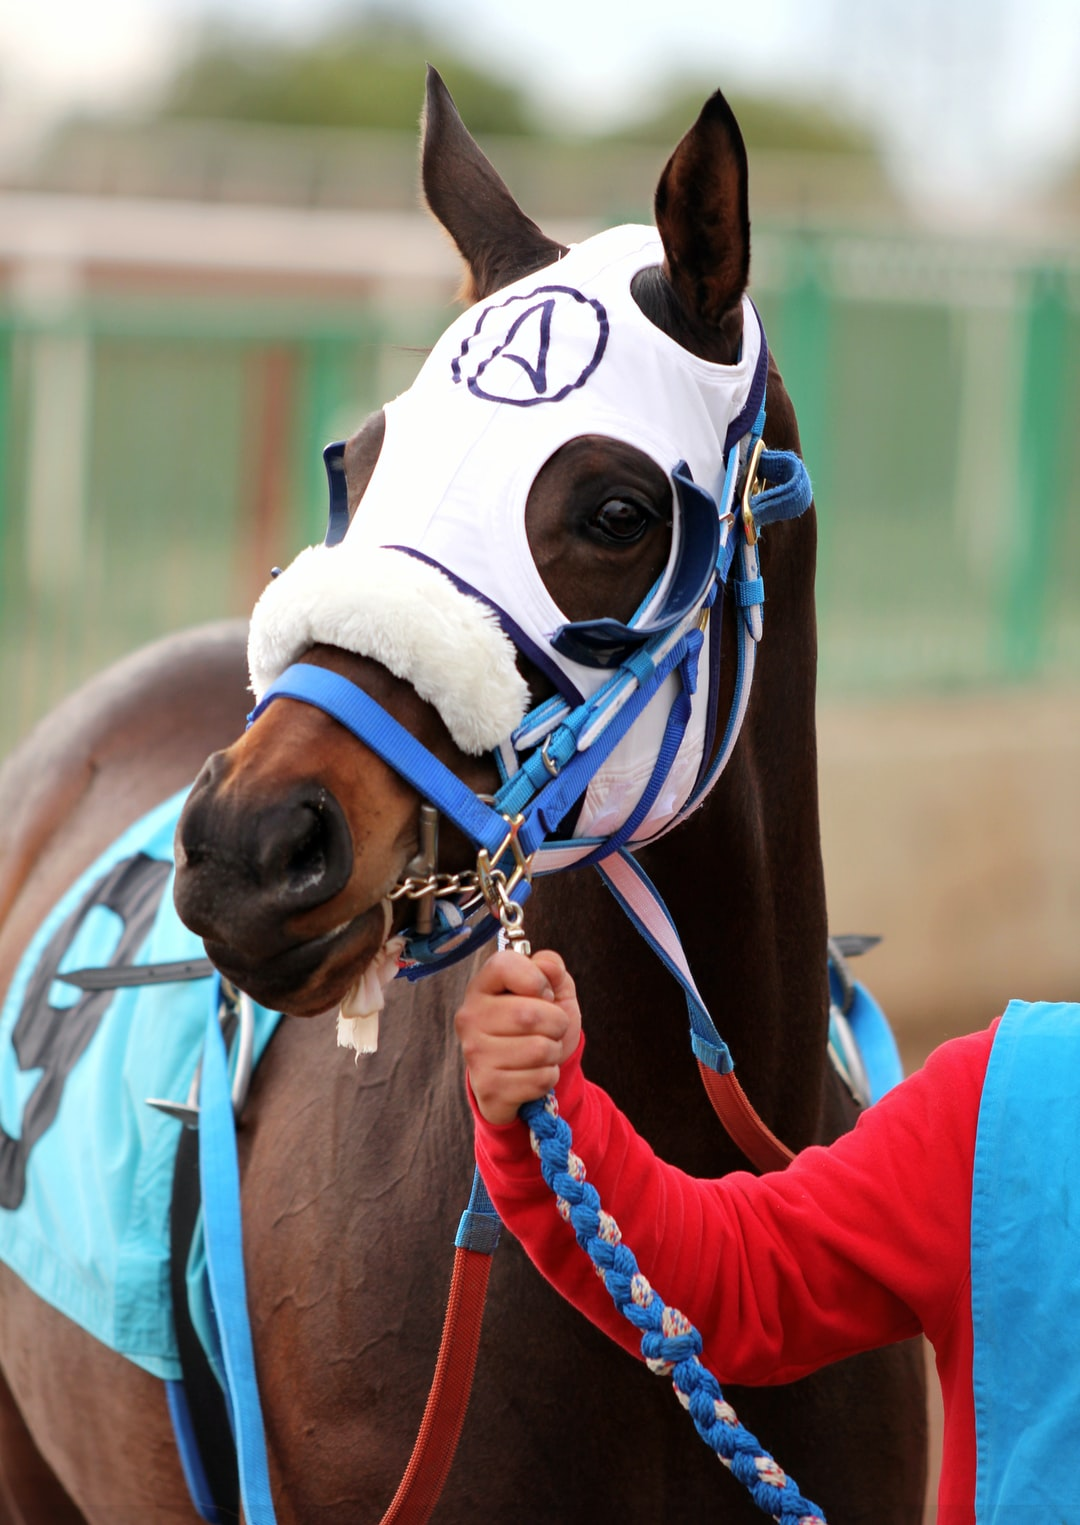 A thoroughbred race horse is held by its handler.